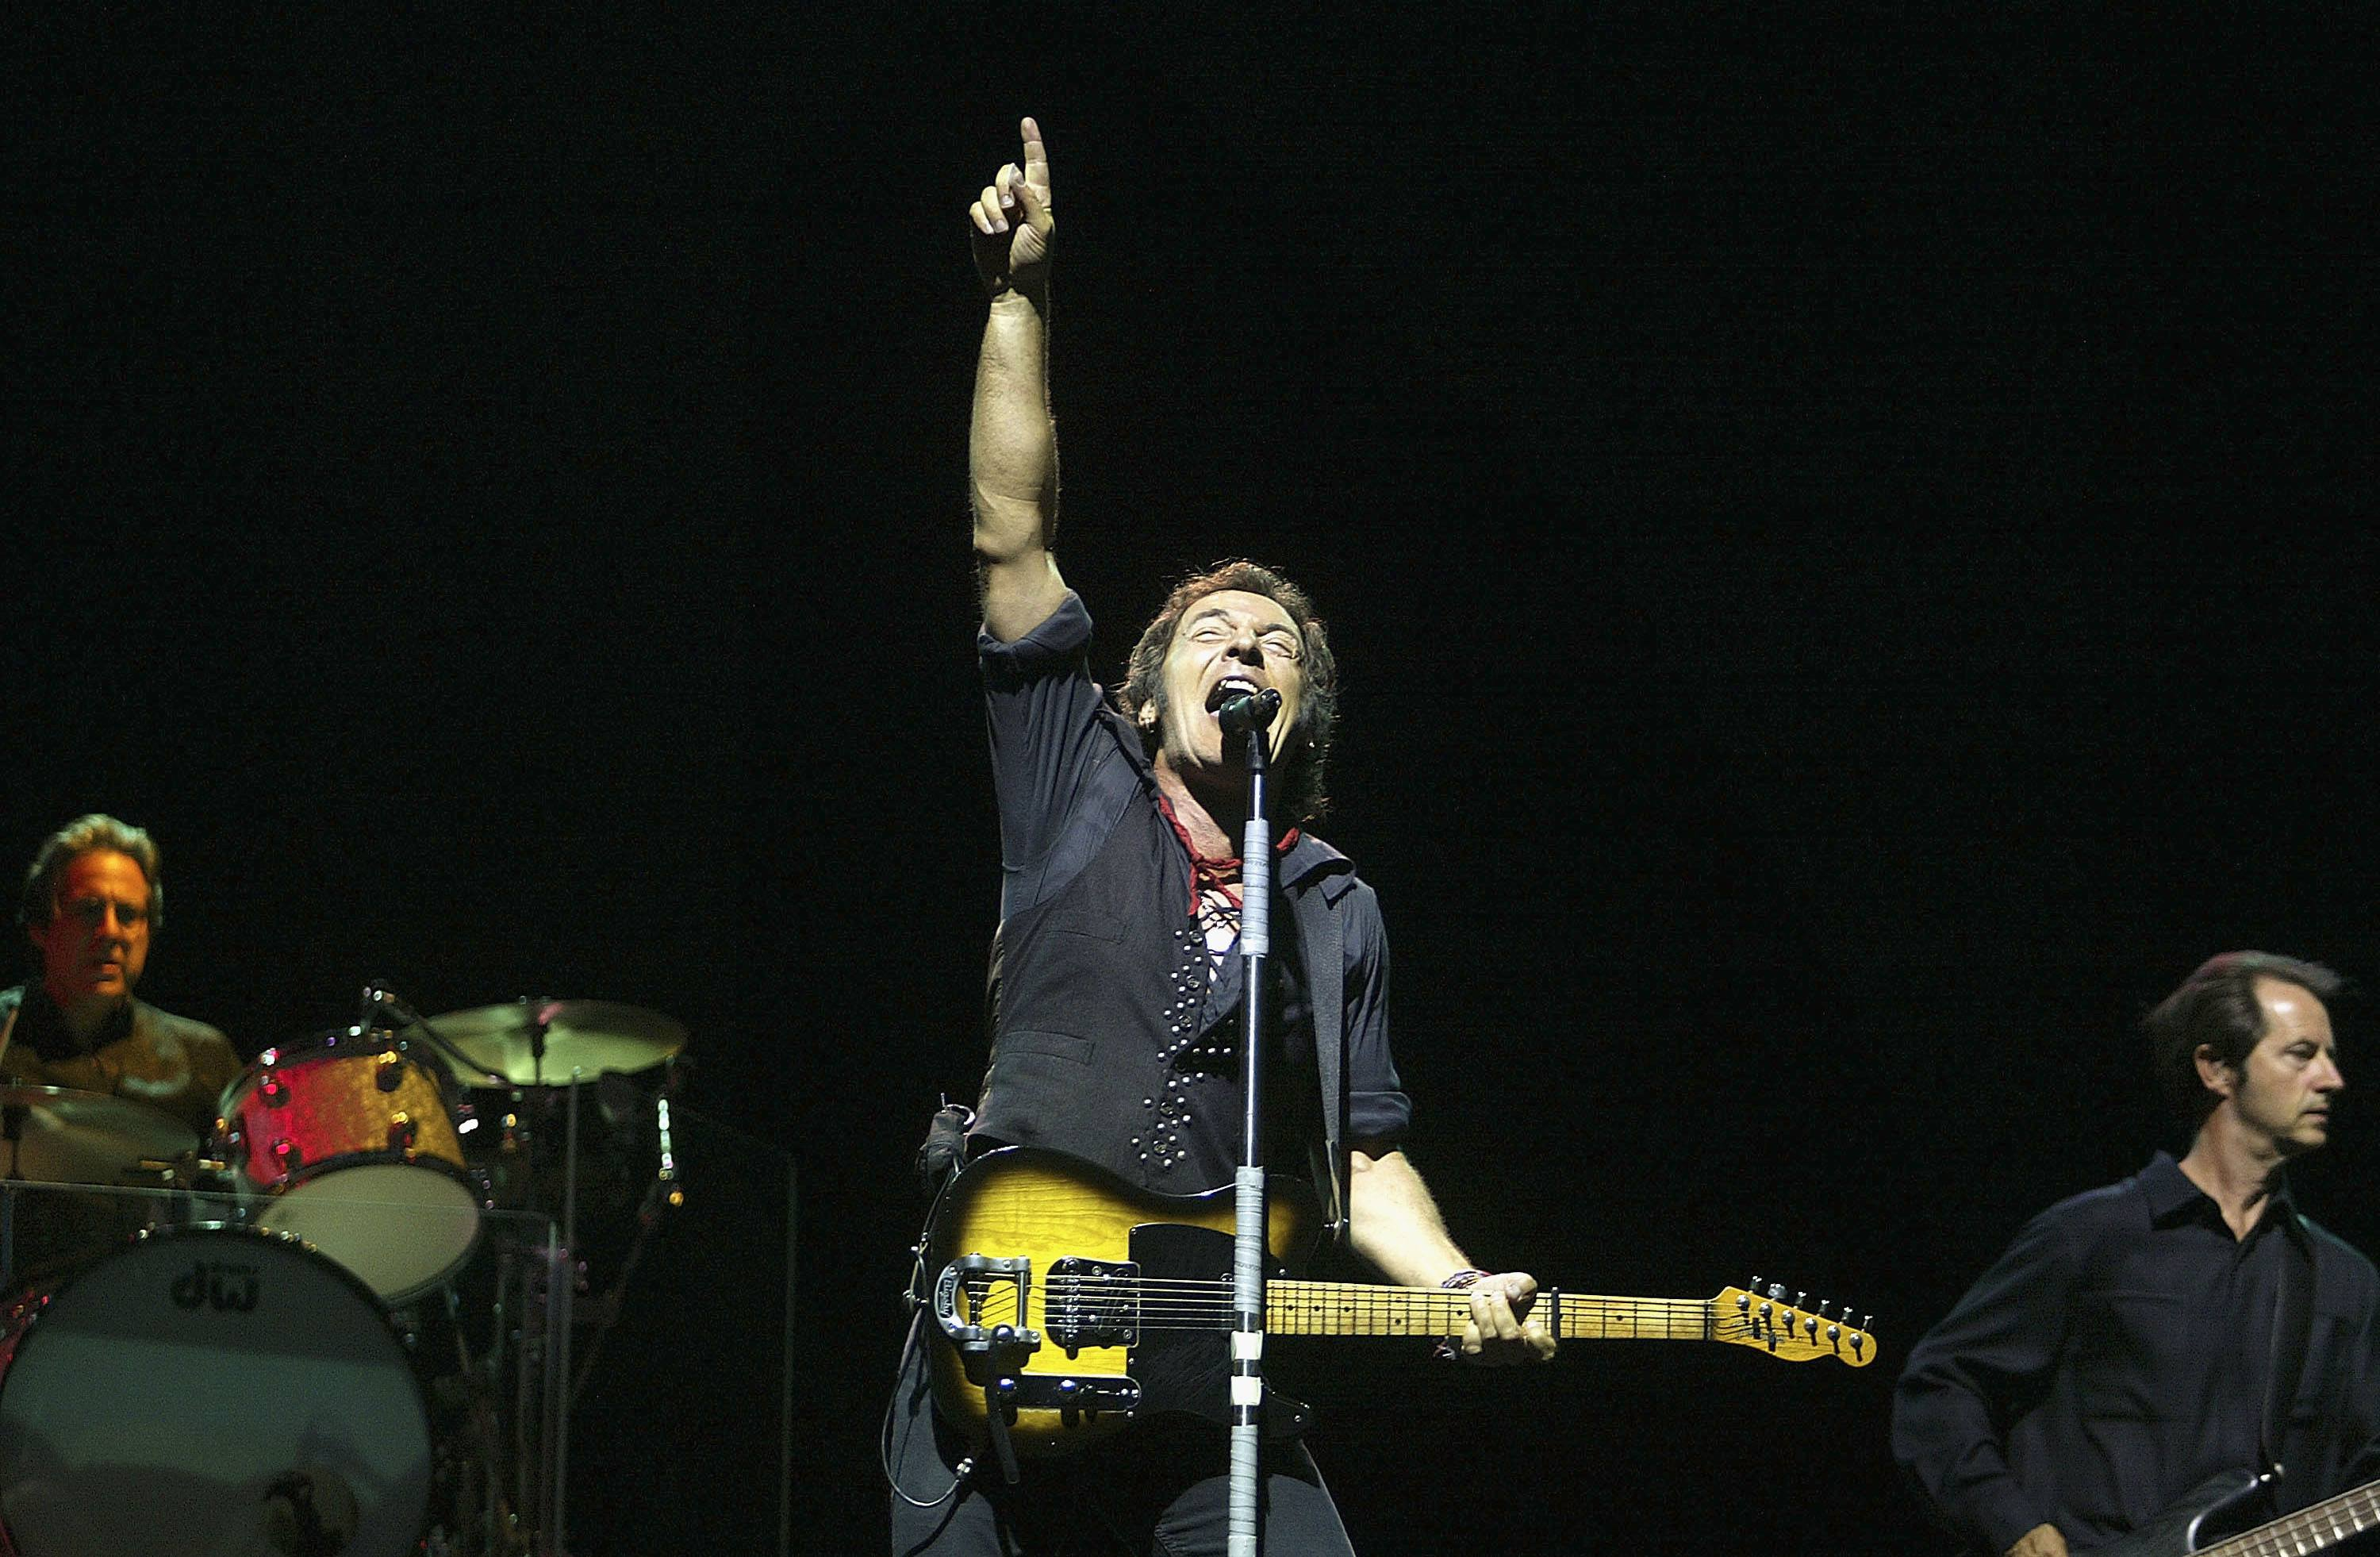 Bruce Springsteen and the E Street Band at Giants Stadium on July 21, 2003